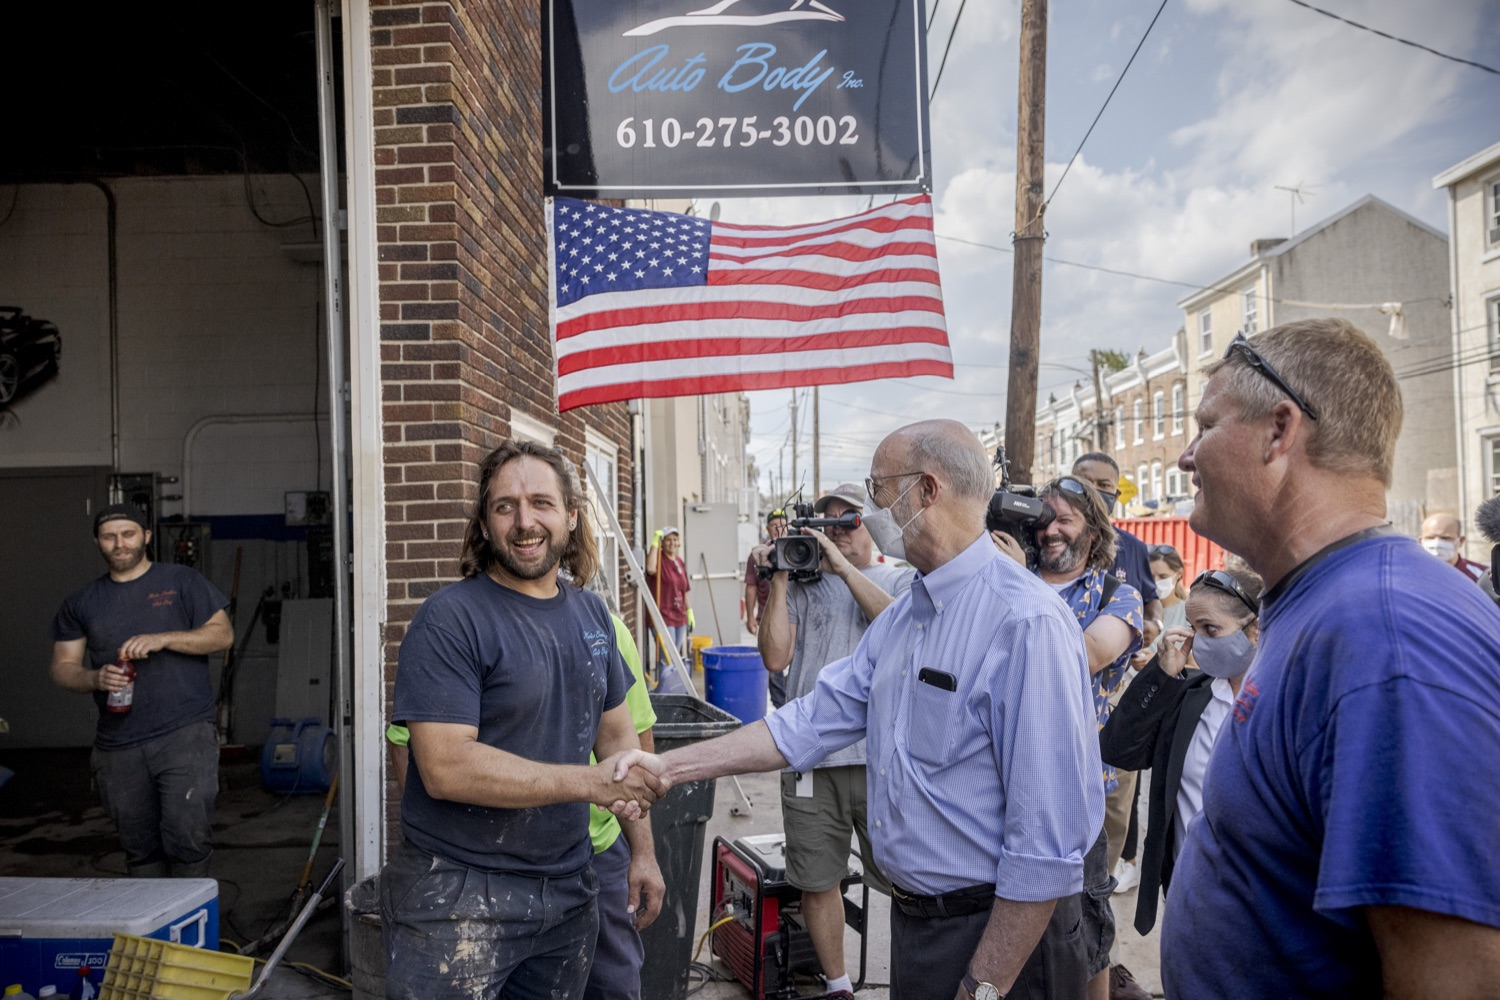 """<a href=""""https://filesource.wostreaming.net/commonwealthofpa/photo/19109_gov_stormDamage_dz_021.jpg"""" target=""""_blank"""">⇣Download Photo<br></a>Pennsylvania Governor Tom Wolf greeting residents while touring storm damage.   , Governor Wolf visited the Borough of Bridgeport to tour some of the areas affected by the remnants of Ida. The governor, joined by local officials, viewed and discussed the impact to damaged areas, including businesses, homes and infrastructure. Bridgeport, PA - September 08, 2021"""